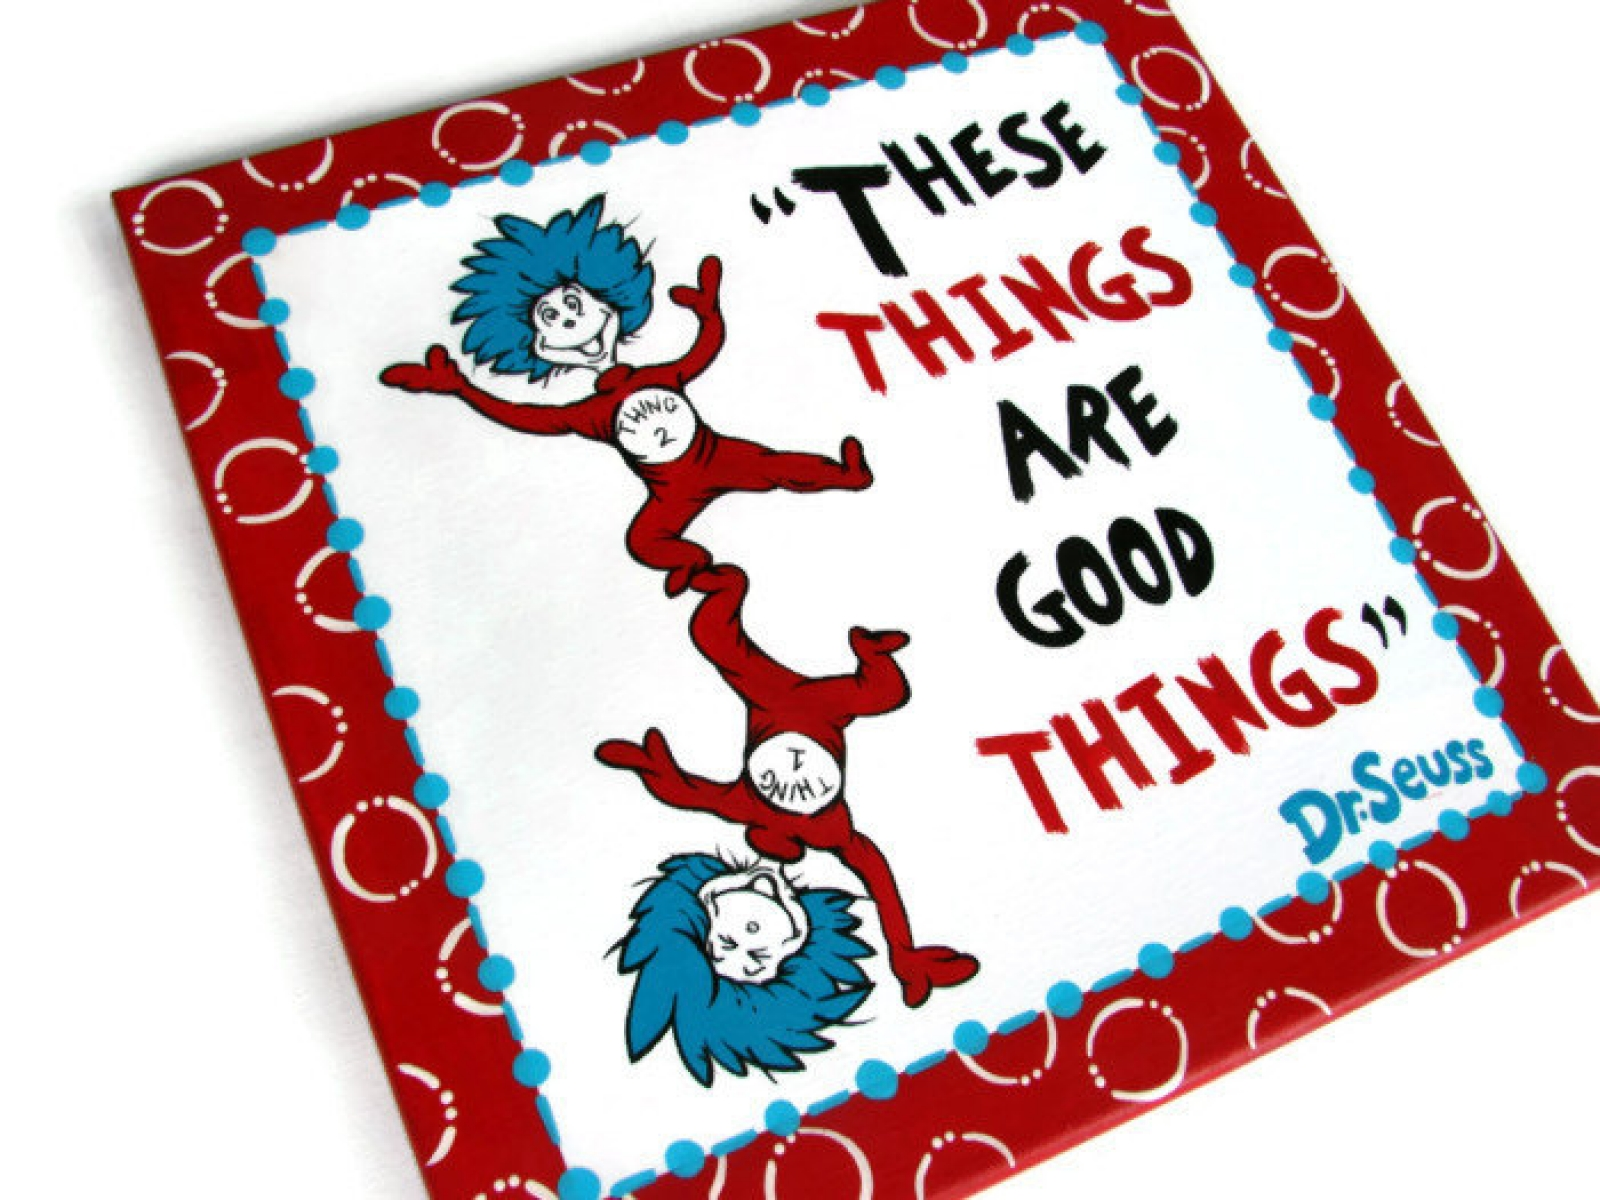 1600x1200 Thing 1 And Thing 2 Canvas, Dr Seuss, These Things Are Good Things